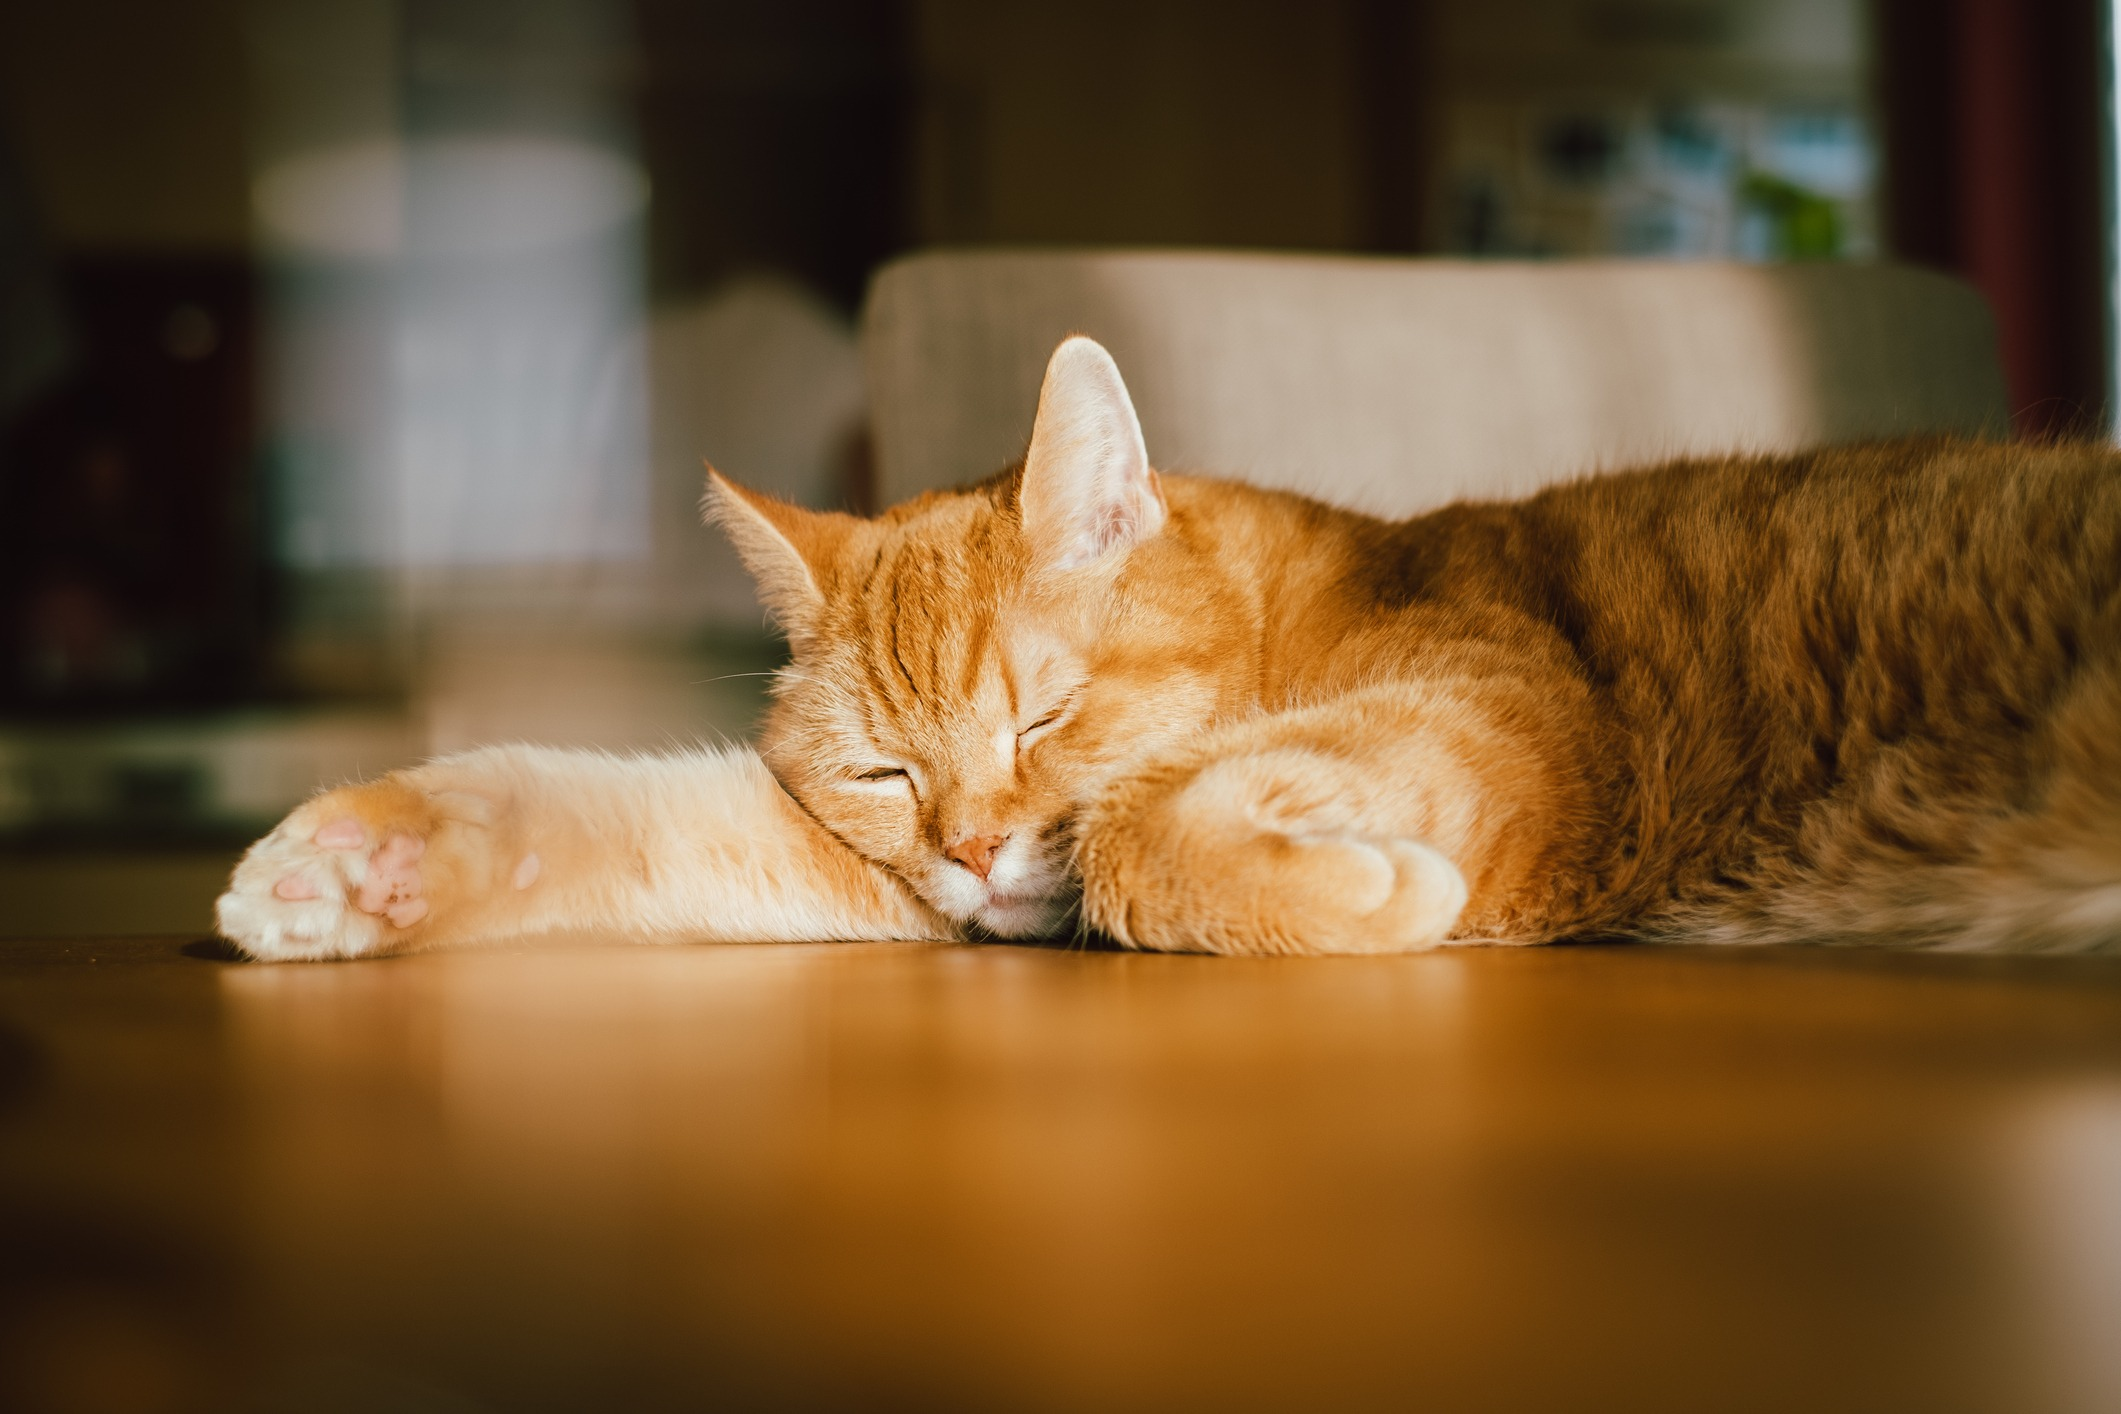 how long do cats sleep in a day